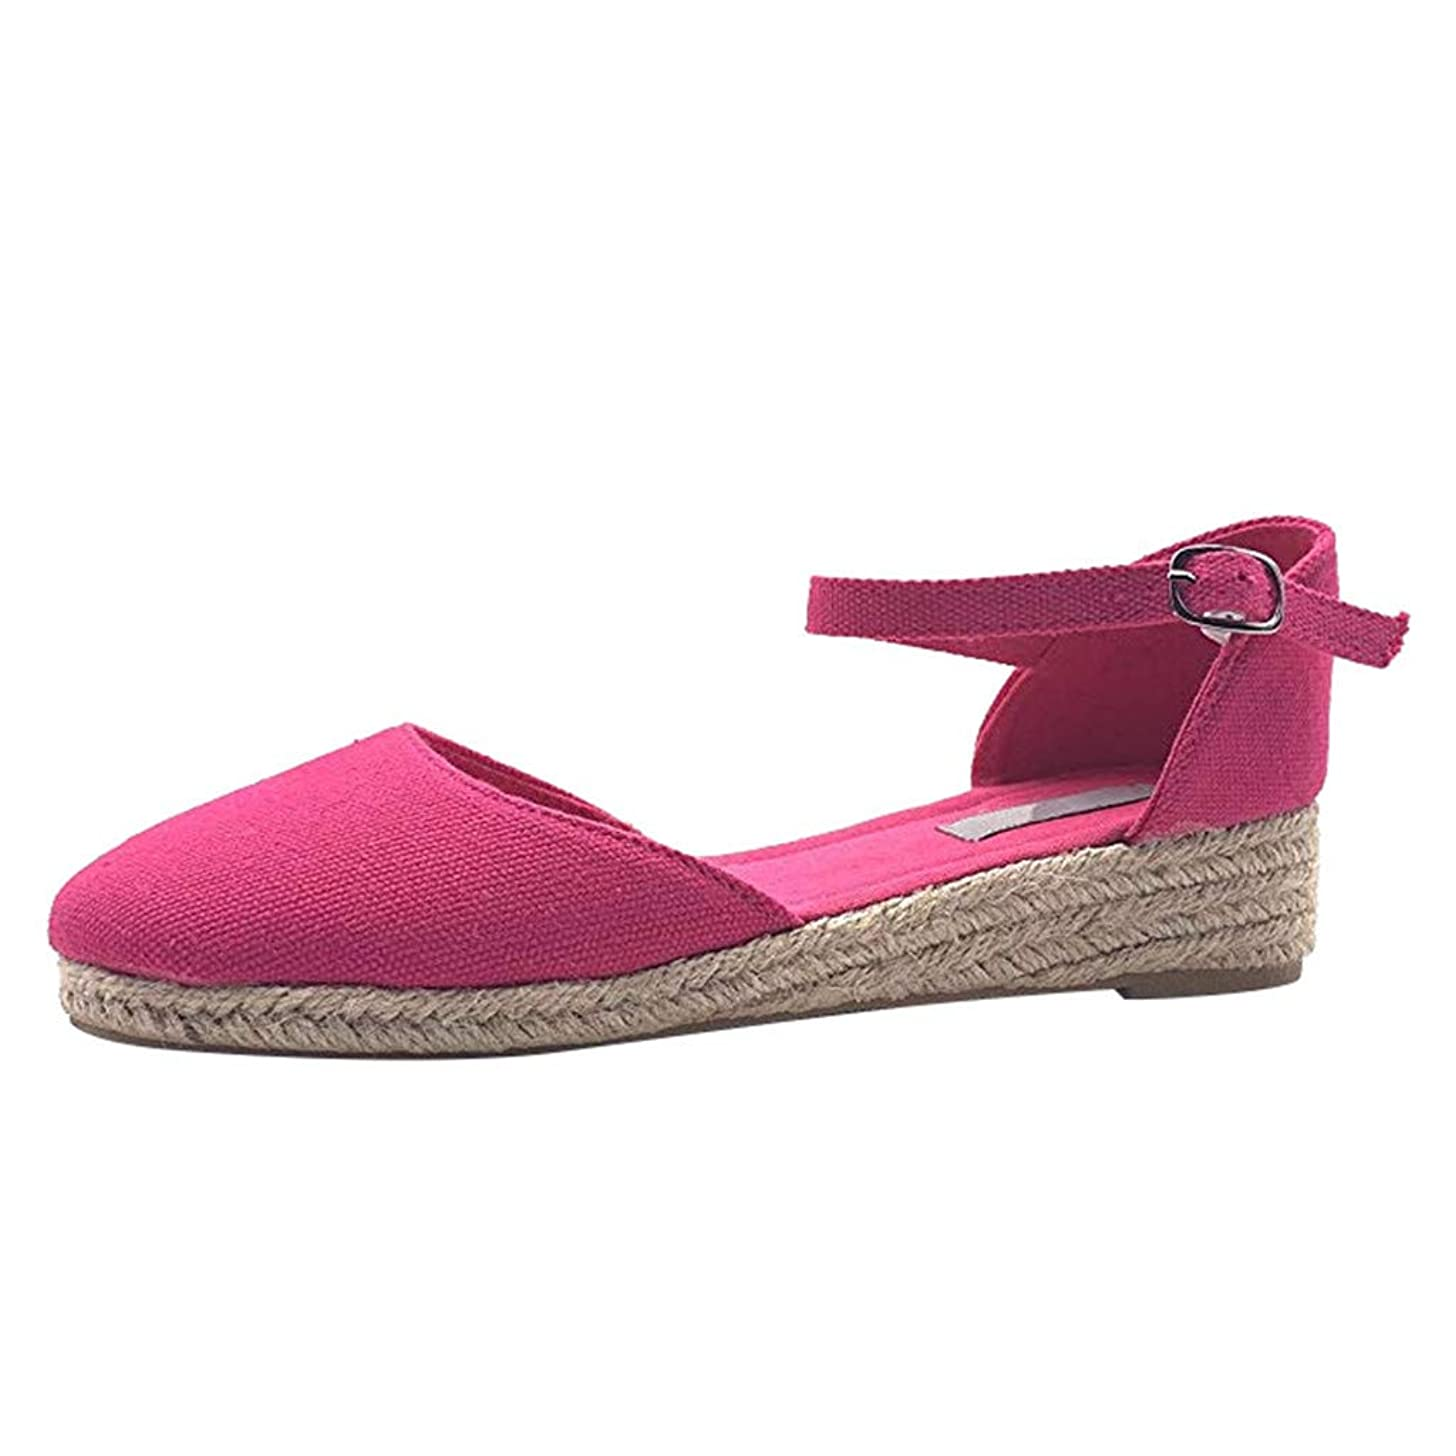 Fheaven Womens Casual Cut Out Espadrilles Trim Flats Shoes Wedge Sandal Adjustable Ankle Straps Loafers